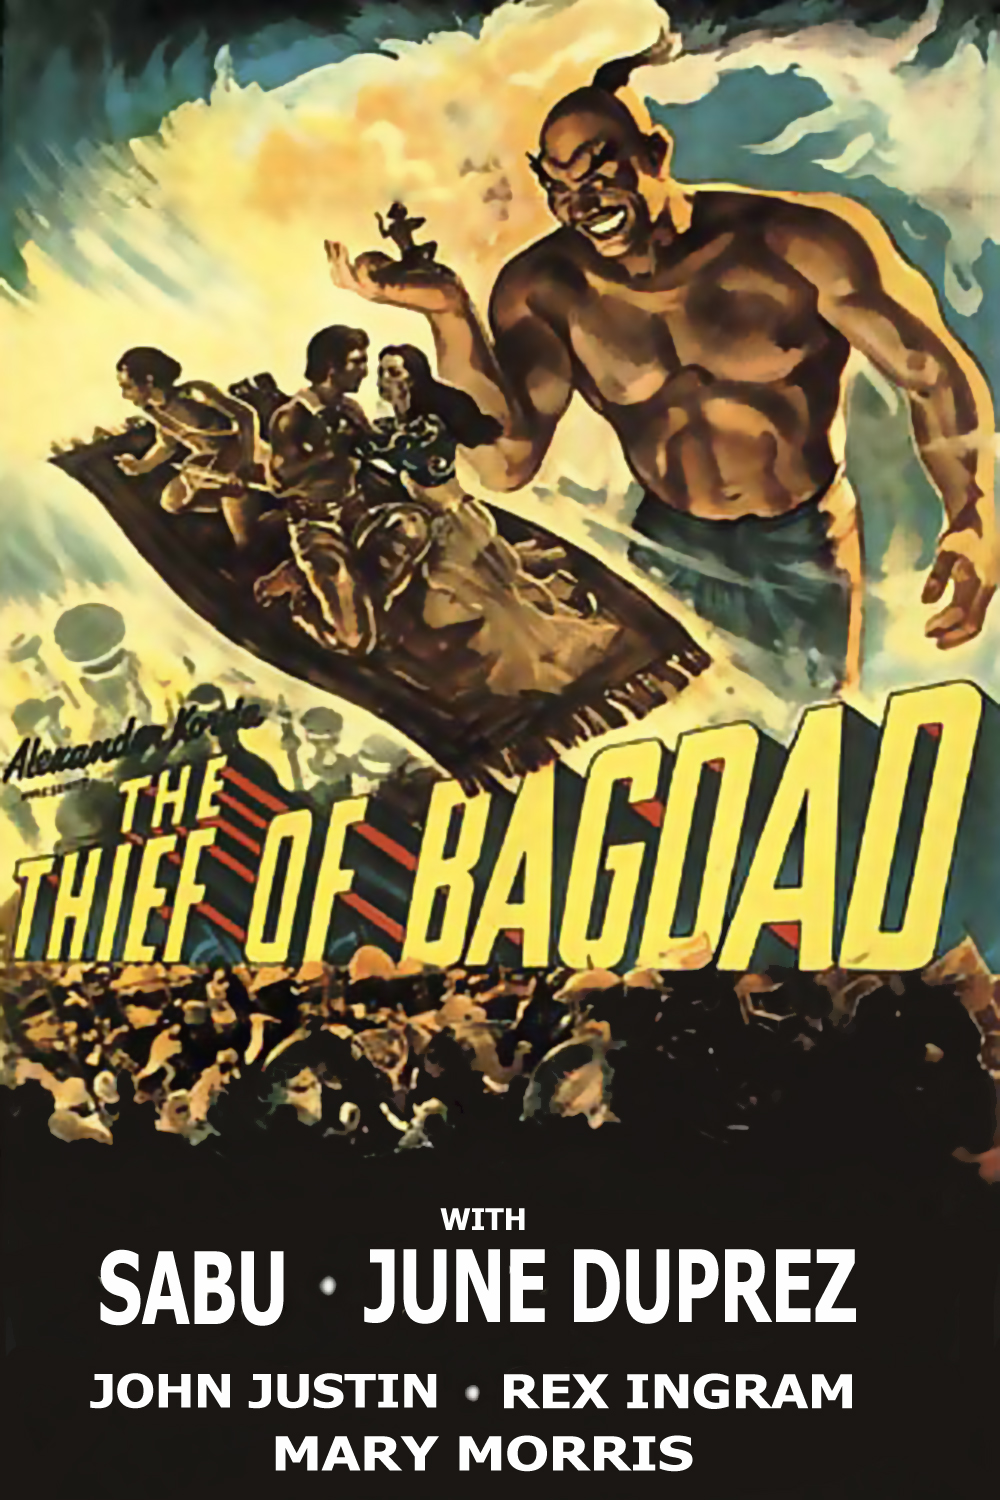 The Thief Of Bagdad v1